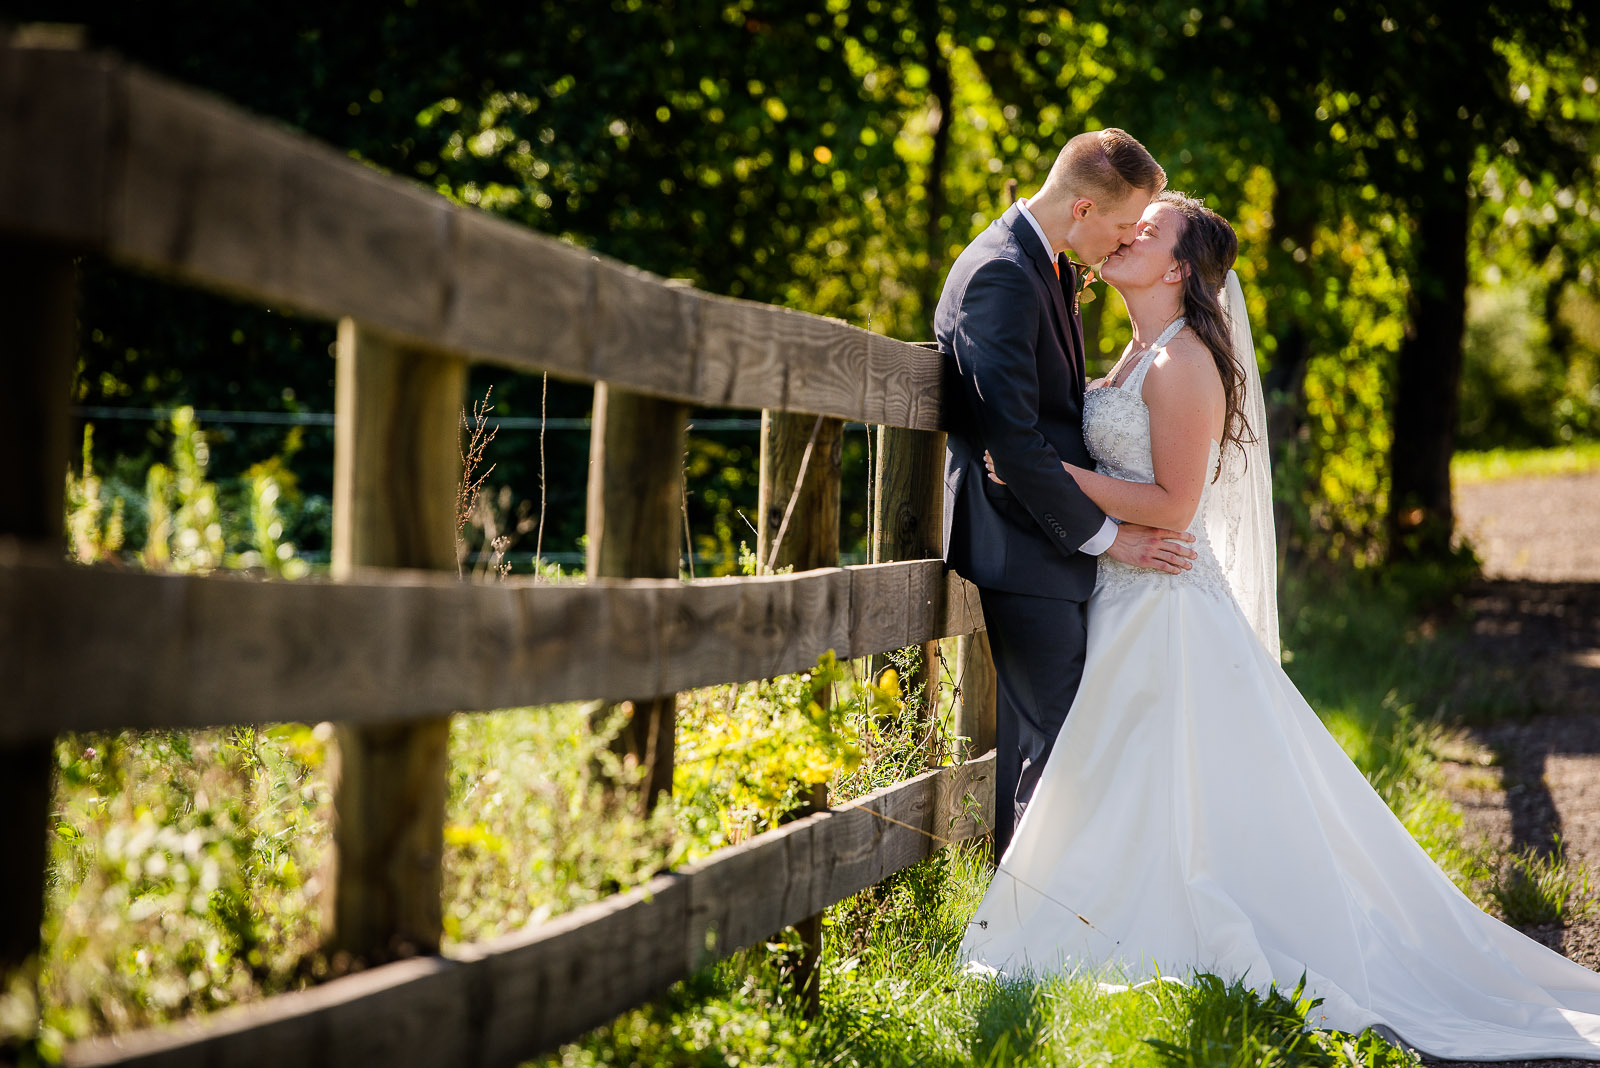 Eric_and_Christy_Photography_Blog_2018_Portraits-36